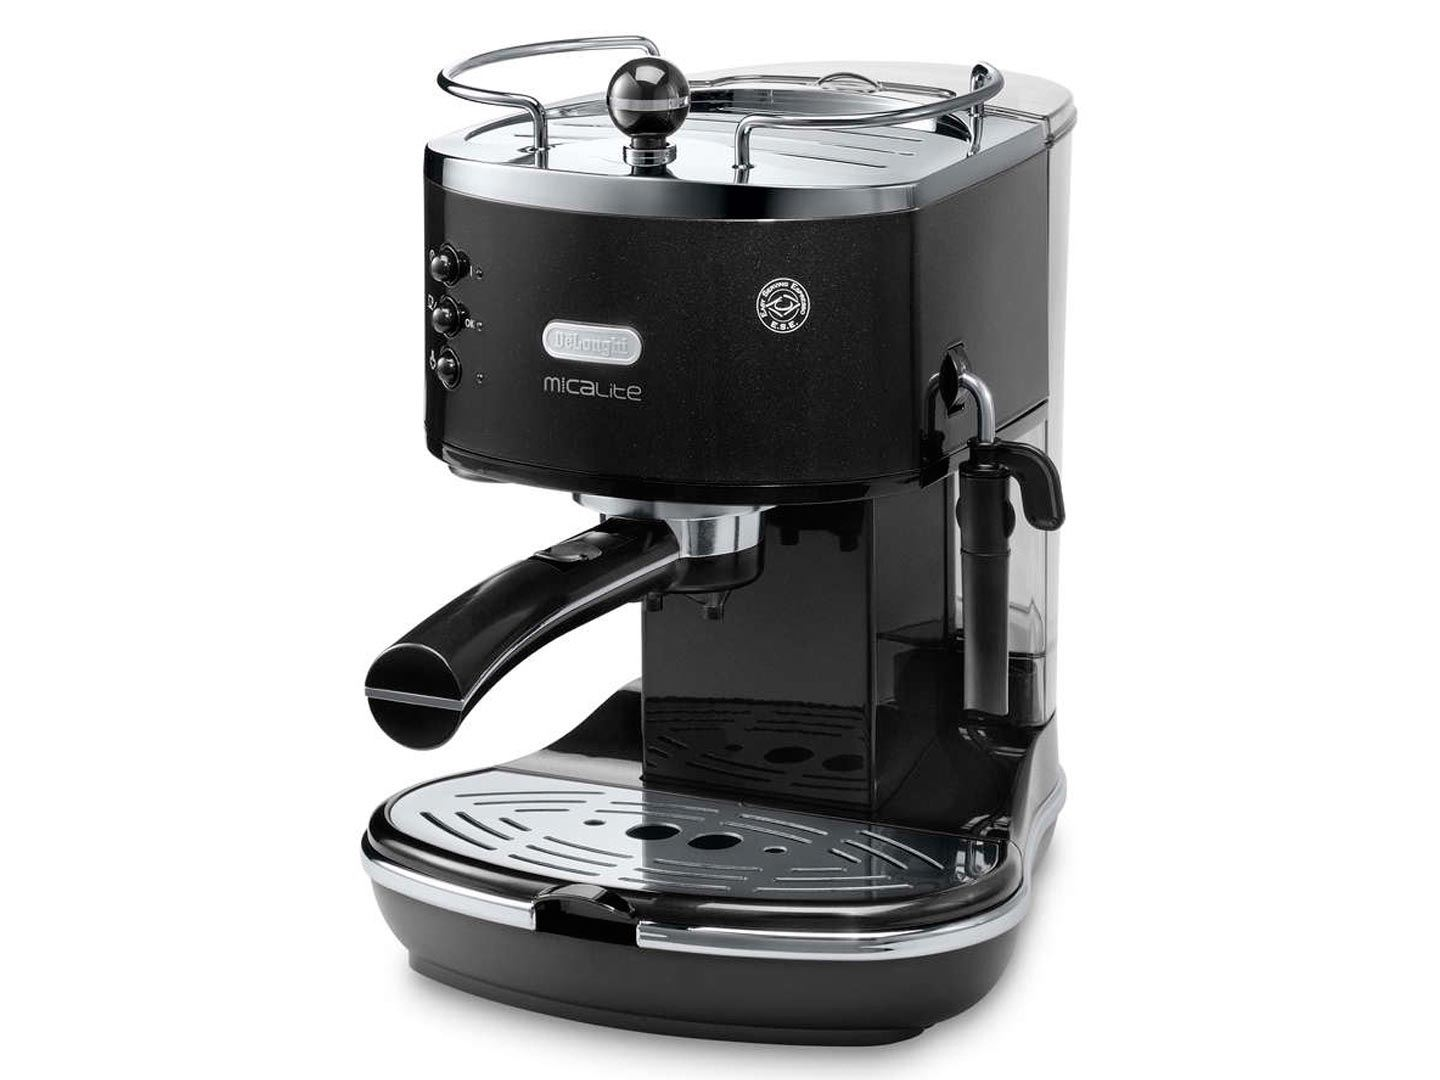 Personal Coffee Maker For Office : Delonghi ECOM310 Icona Micalite 2 Cup Espresso Filter Coffee Maker Machine NEW eBay